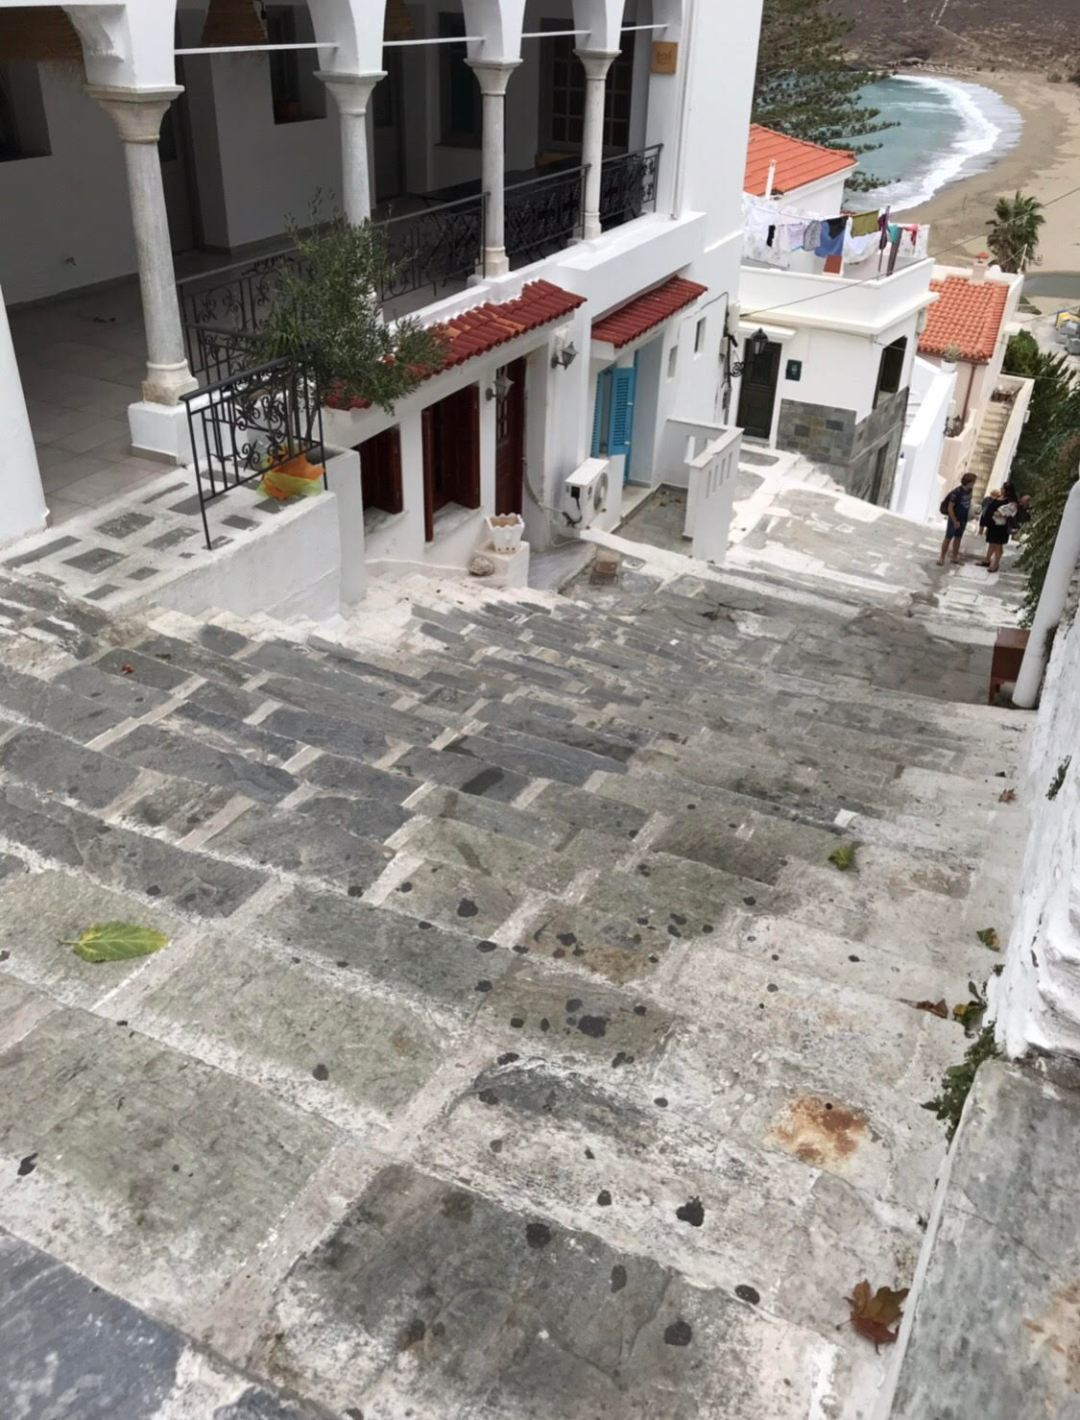 Streets of Chora, Andros, Greece.